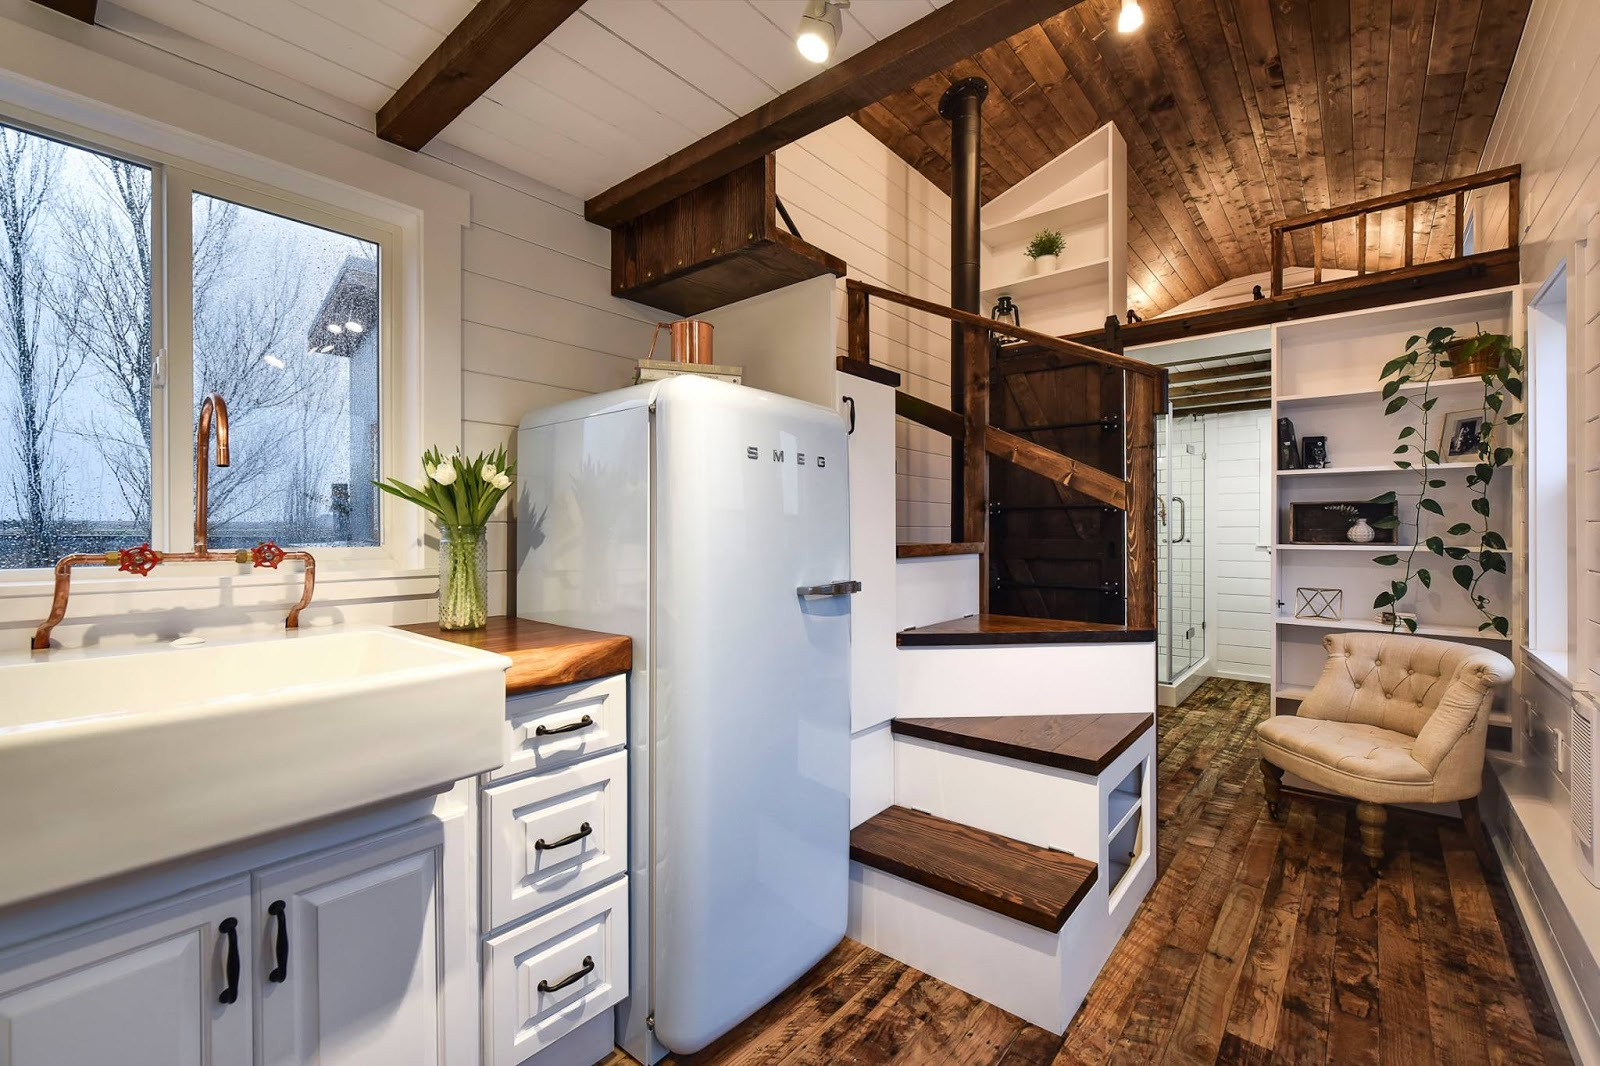 Rustic Tiny From Mint Tiny House Company Tiny House Town - rustic tiny house ideas